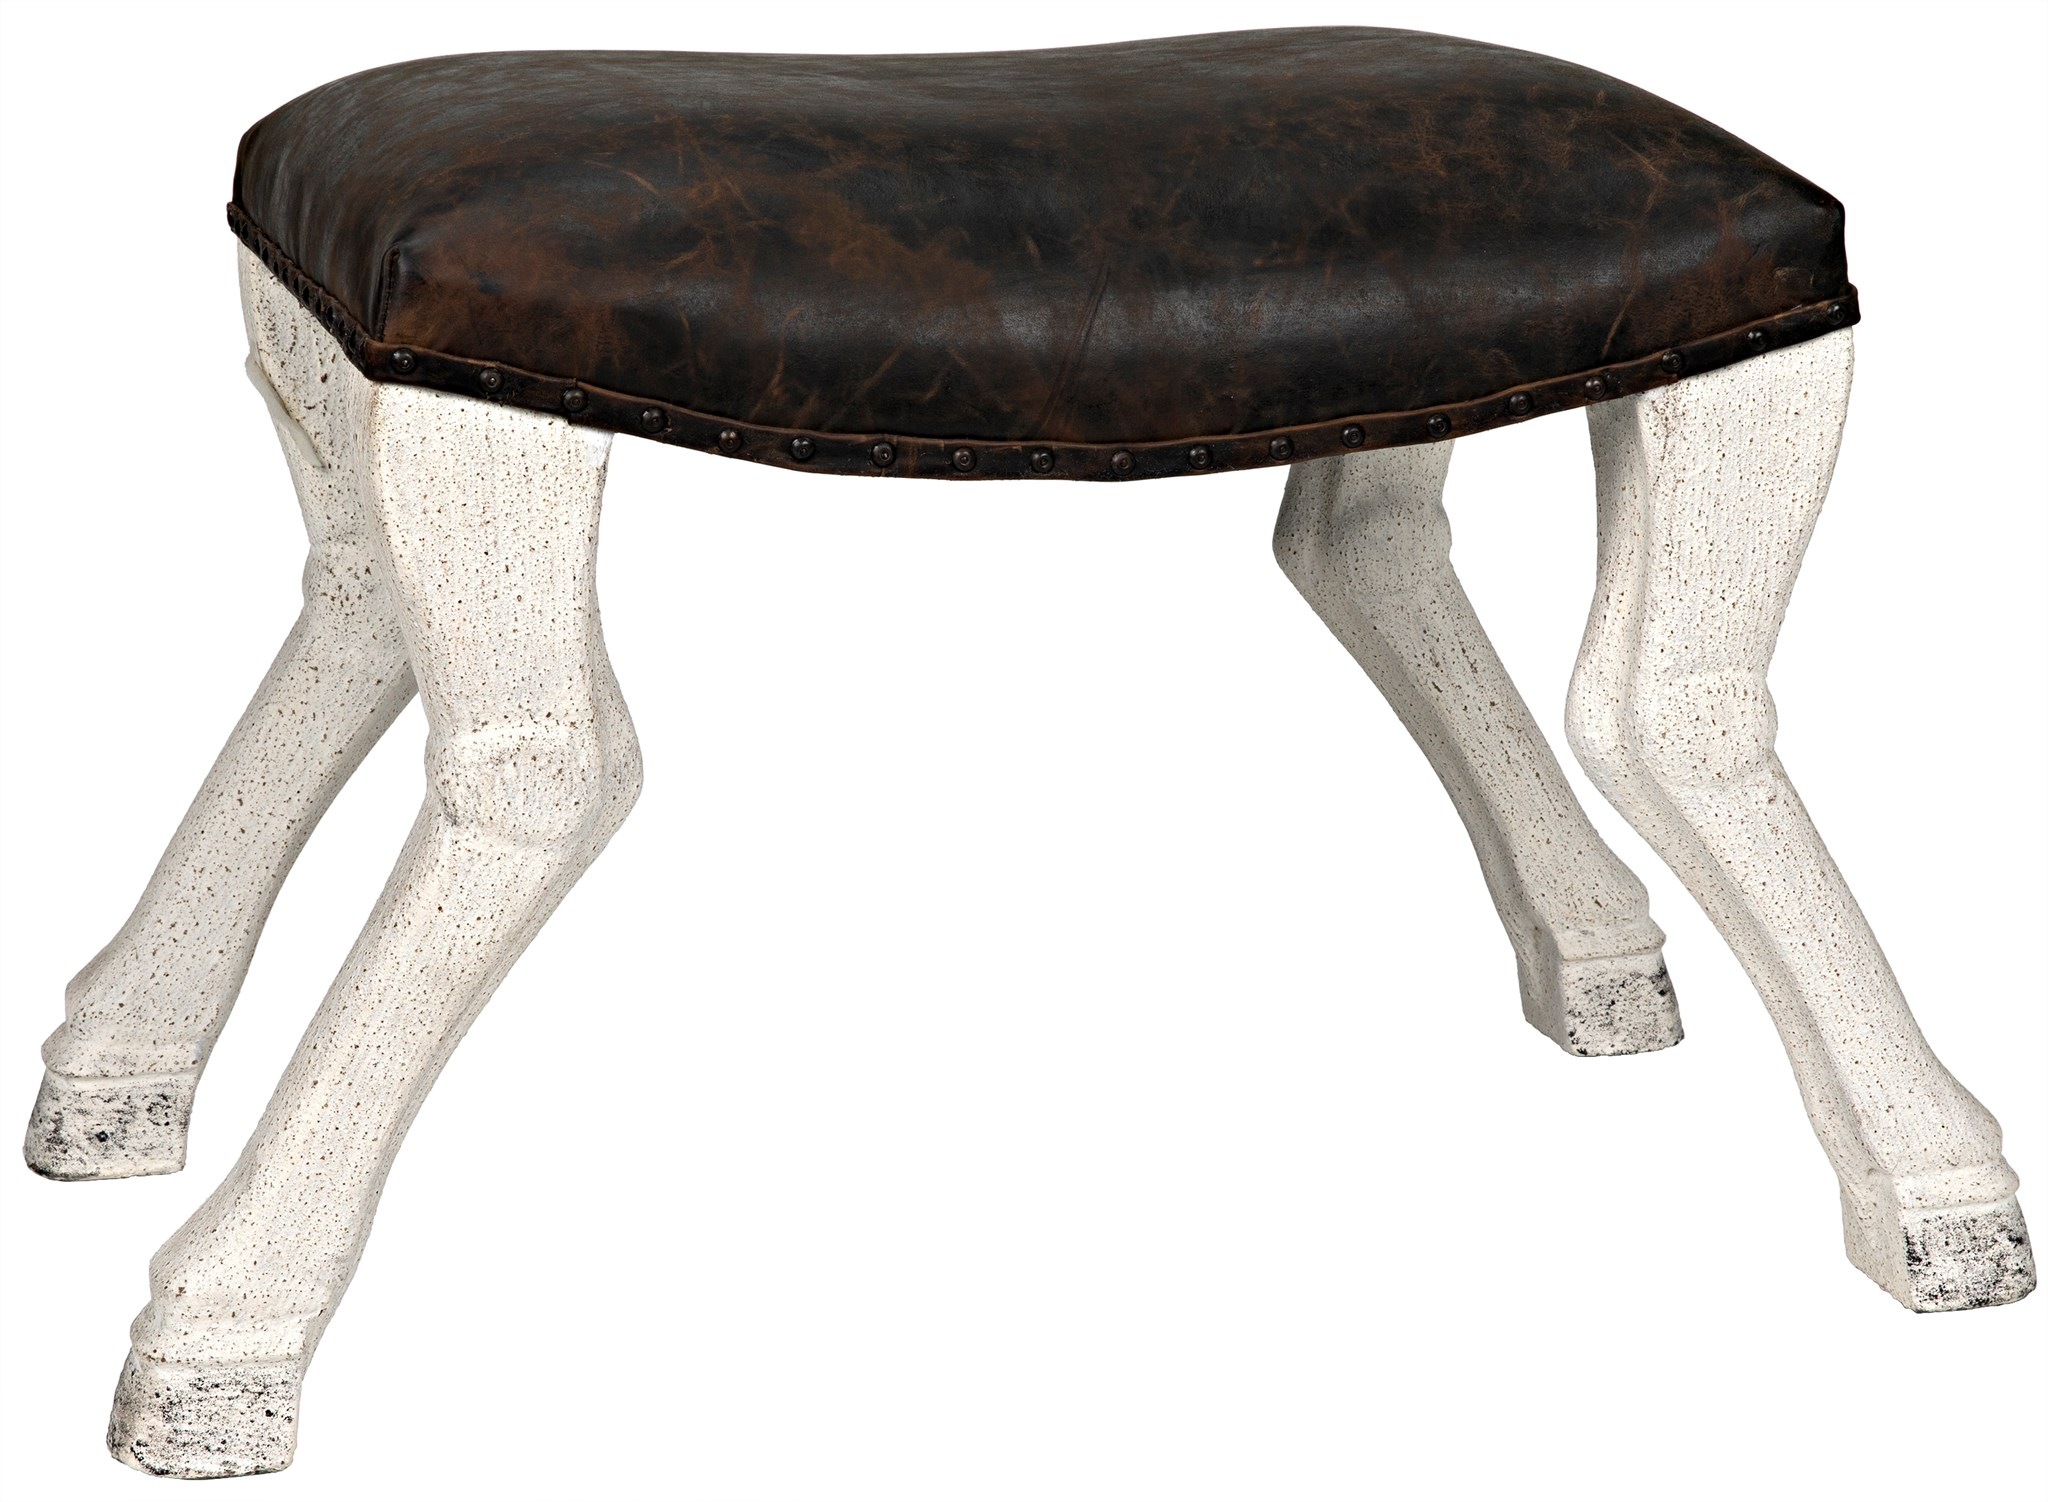 Horse saddle chair - View Larger Image